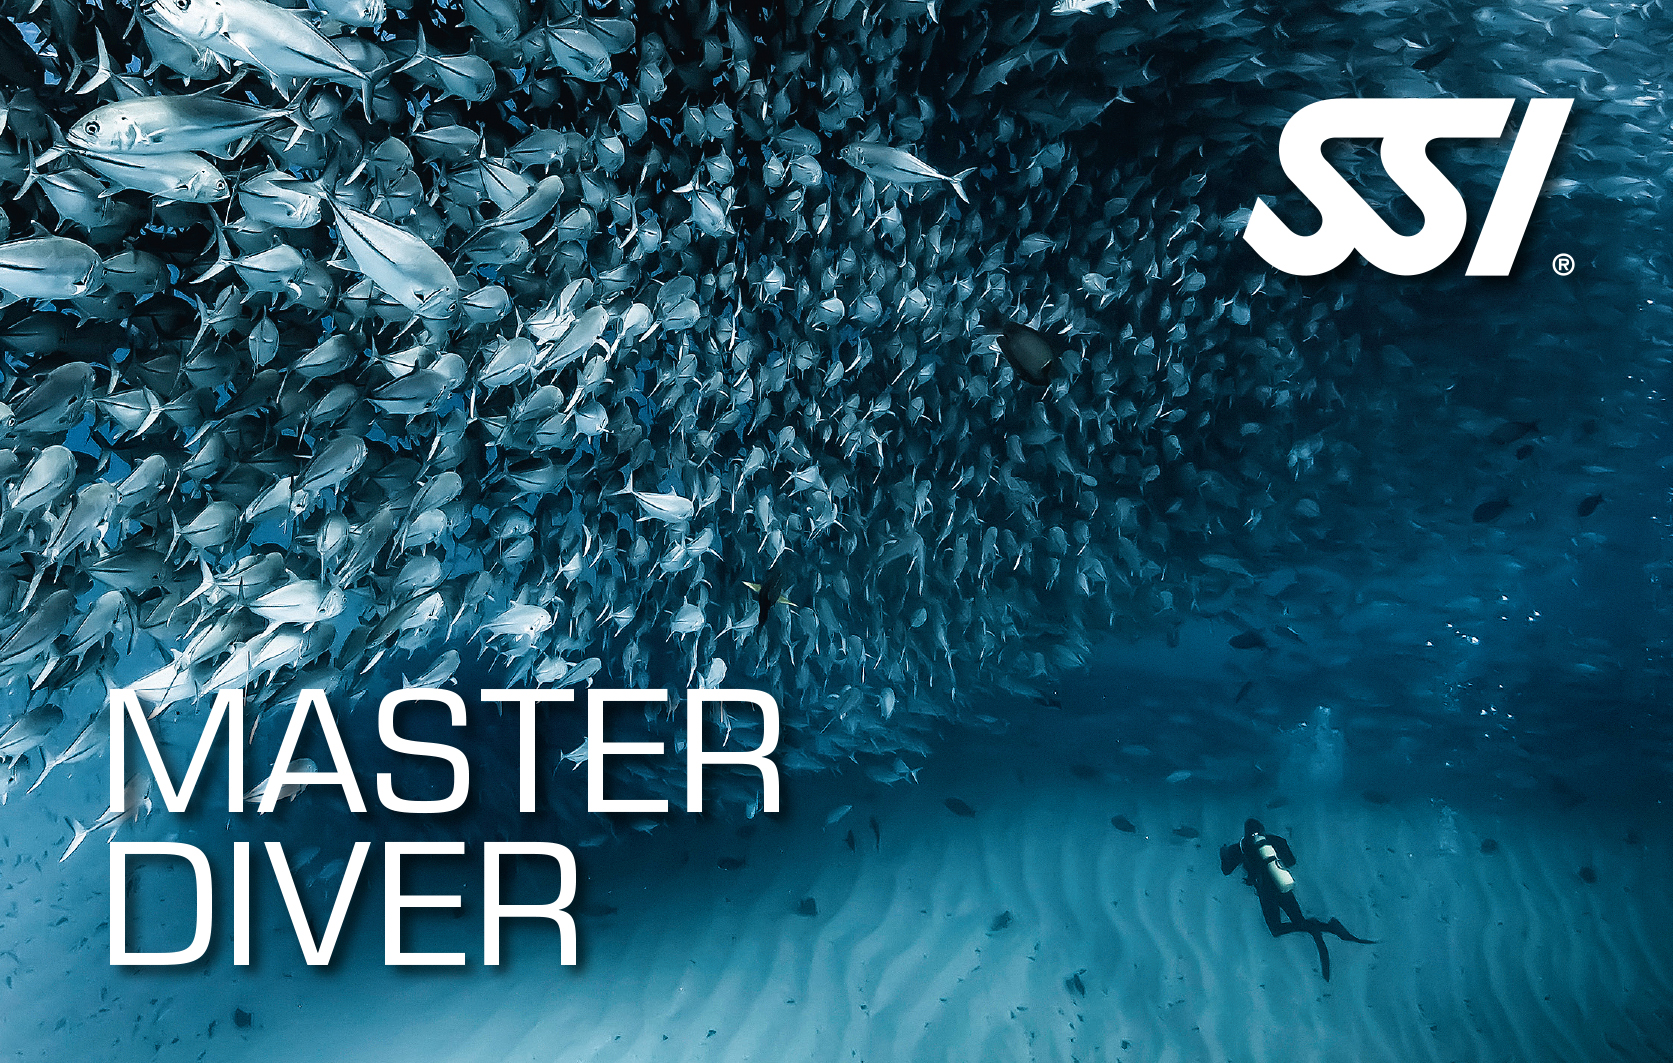 Become a MASTER DIVER